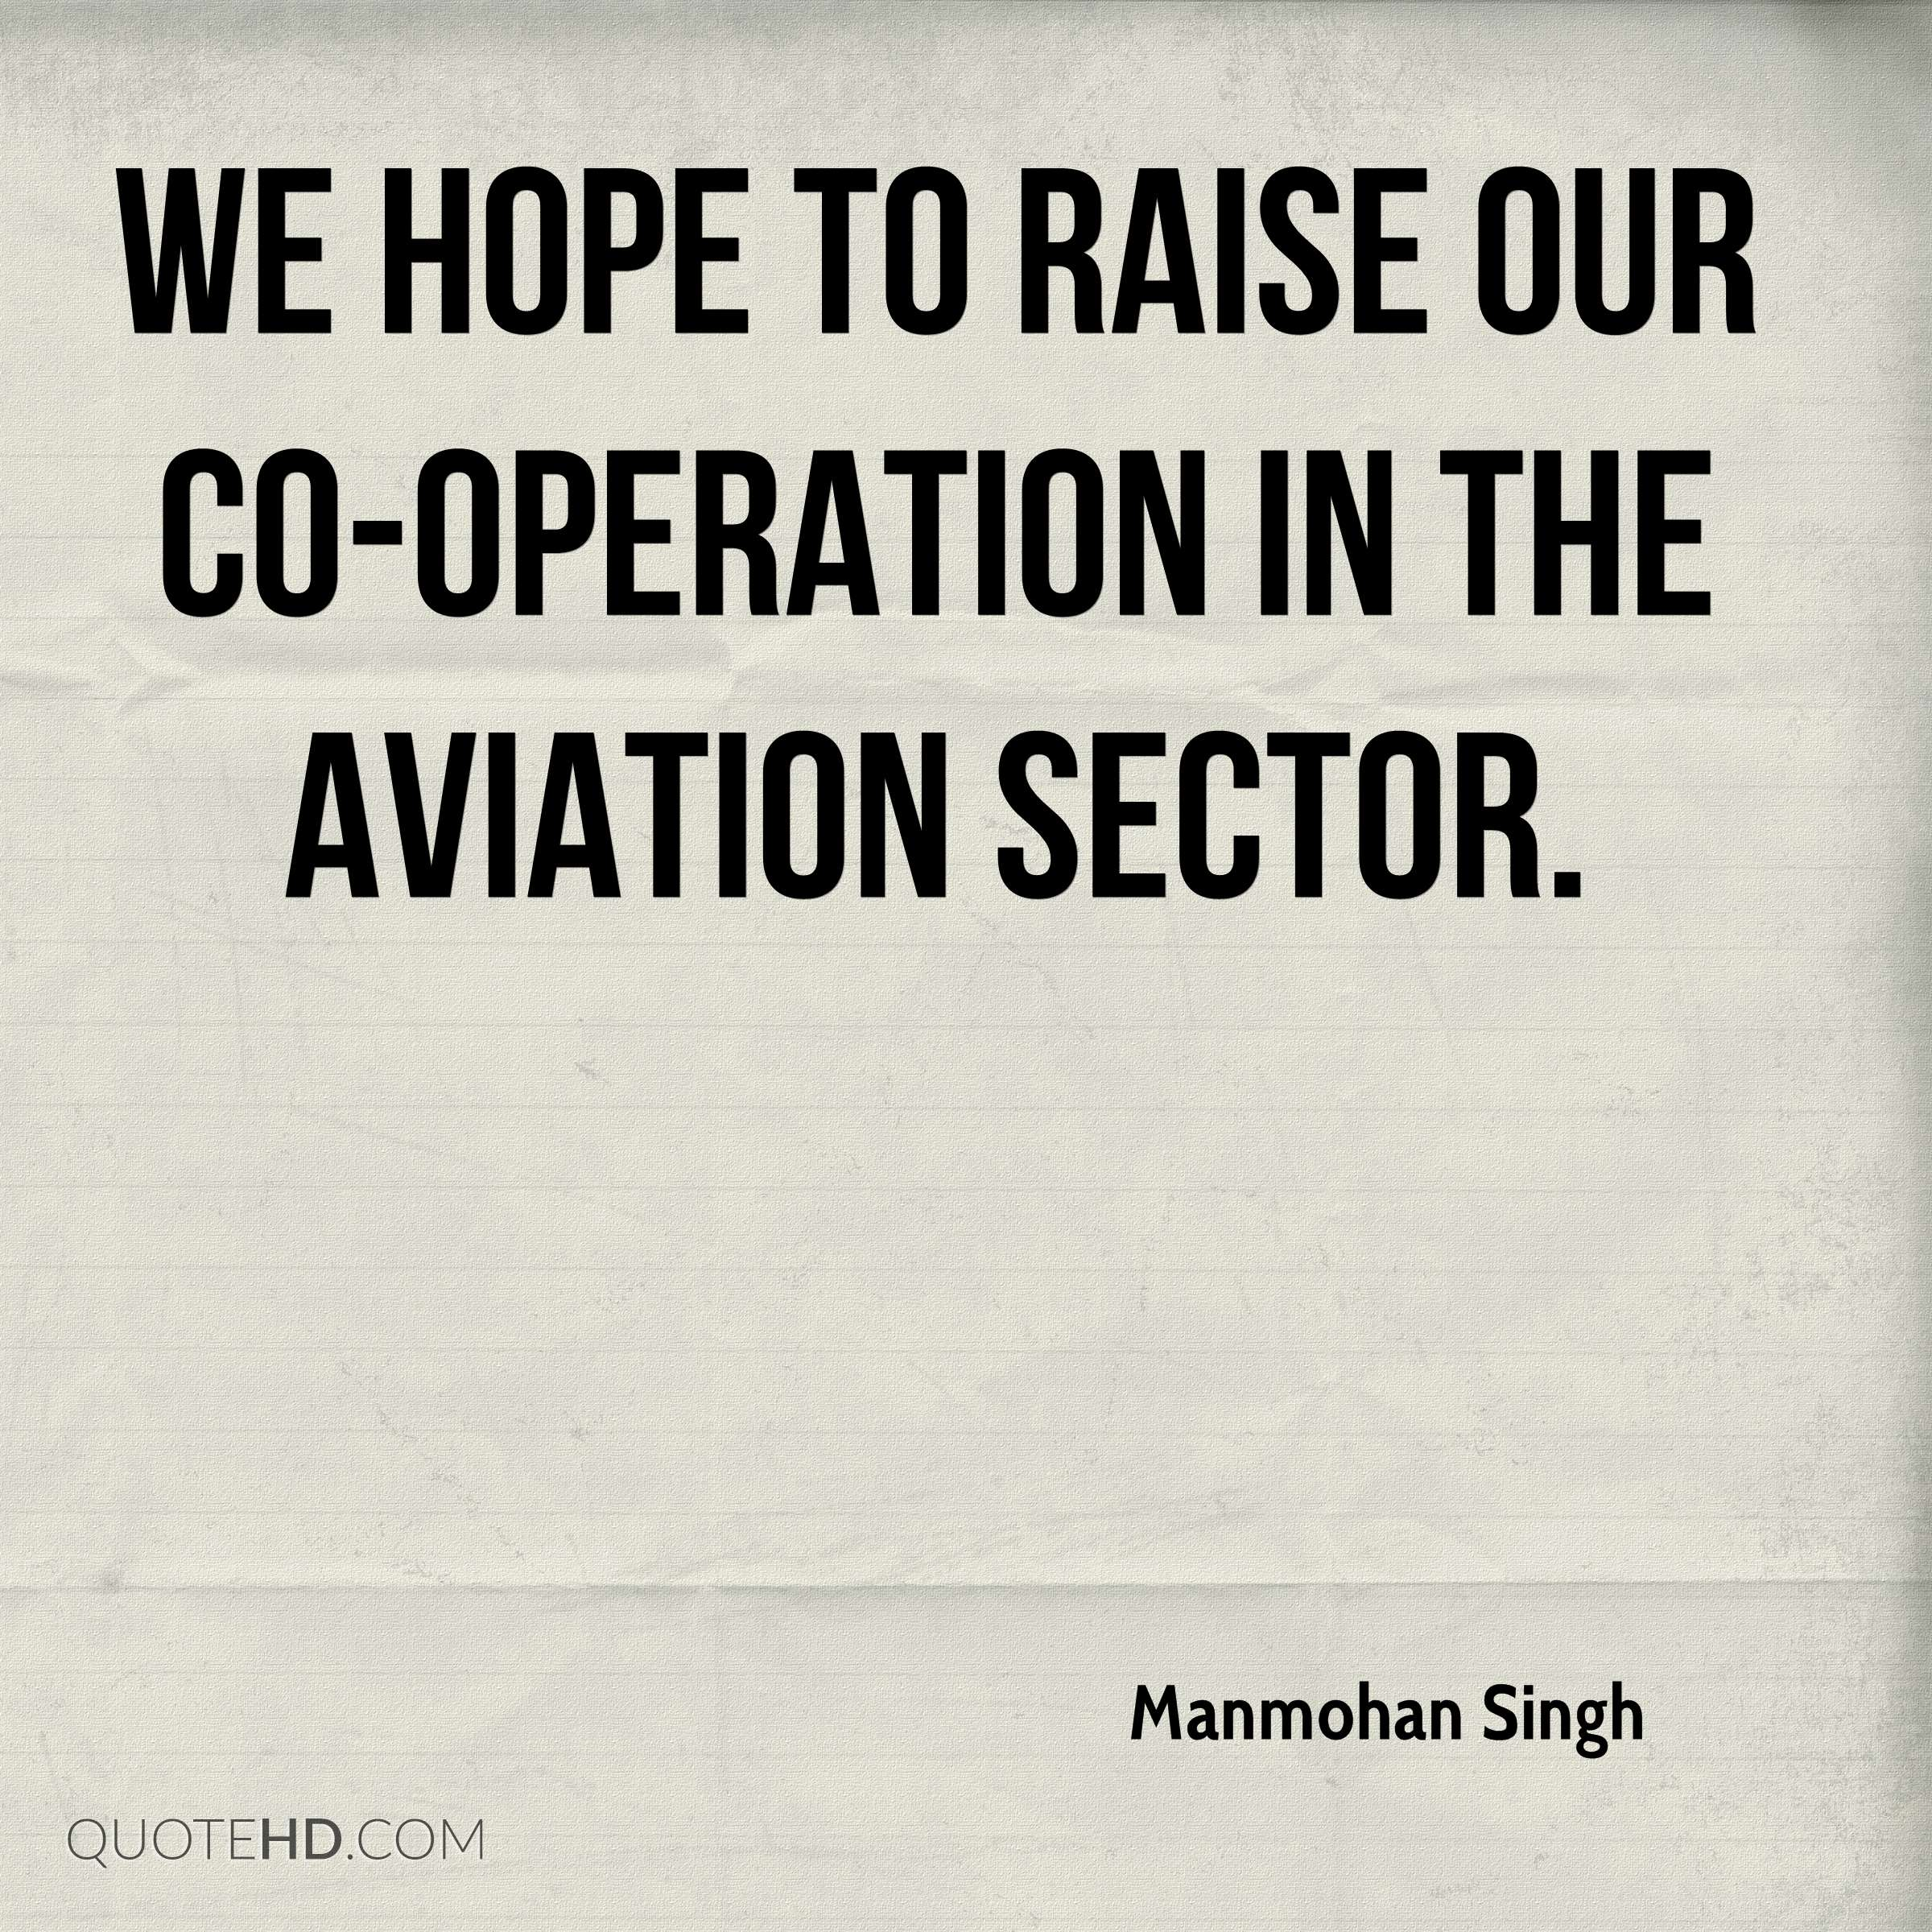 We hope to raise our co-operation in the aviation sector.